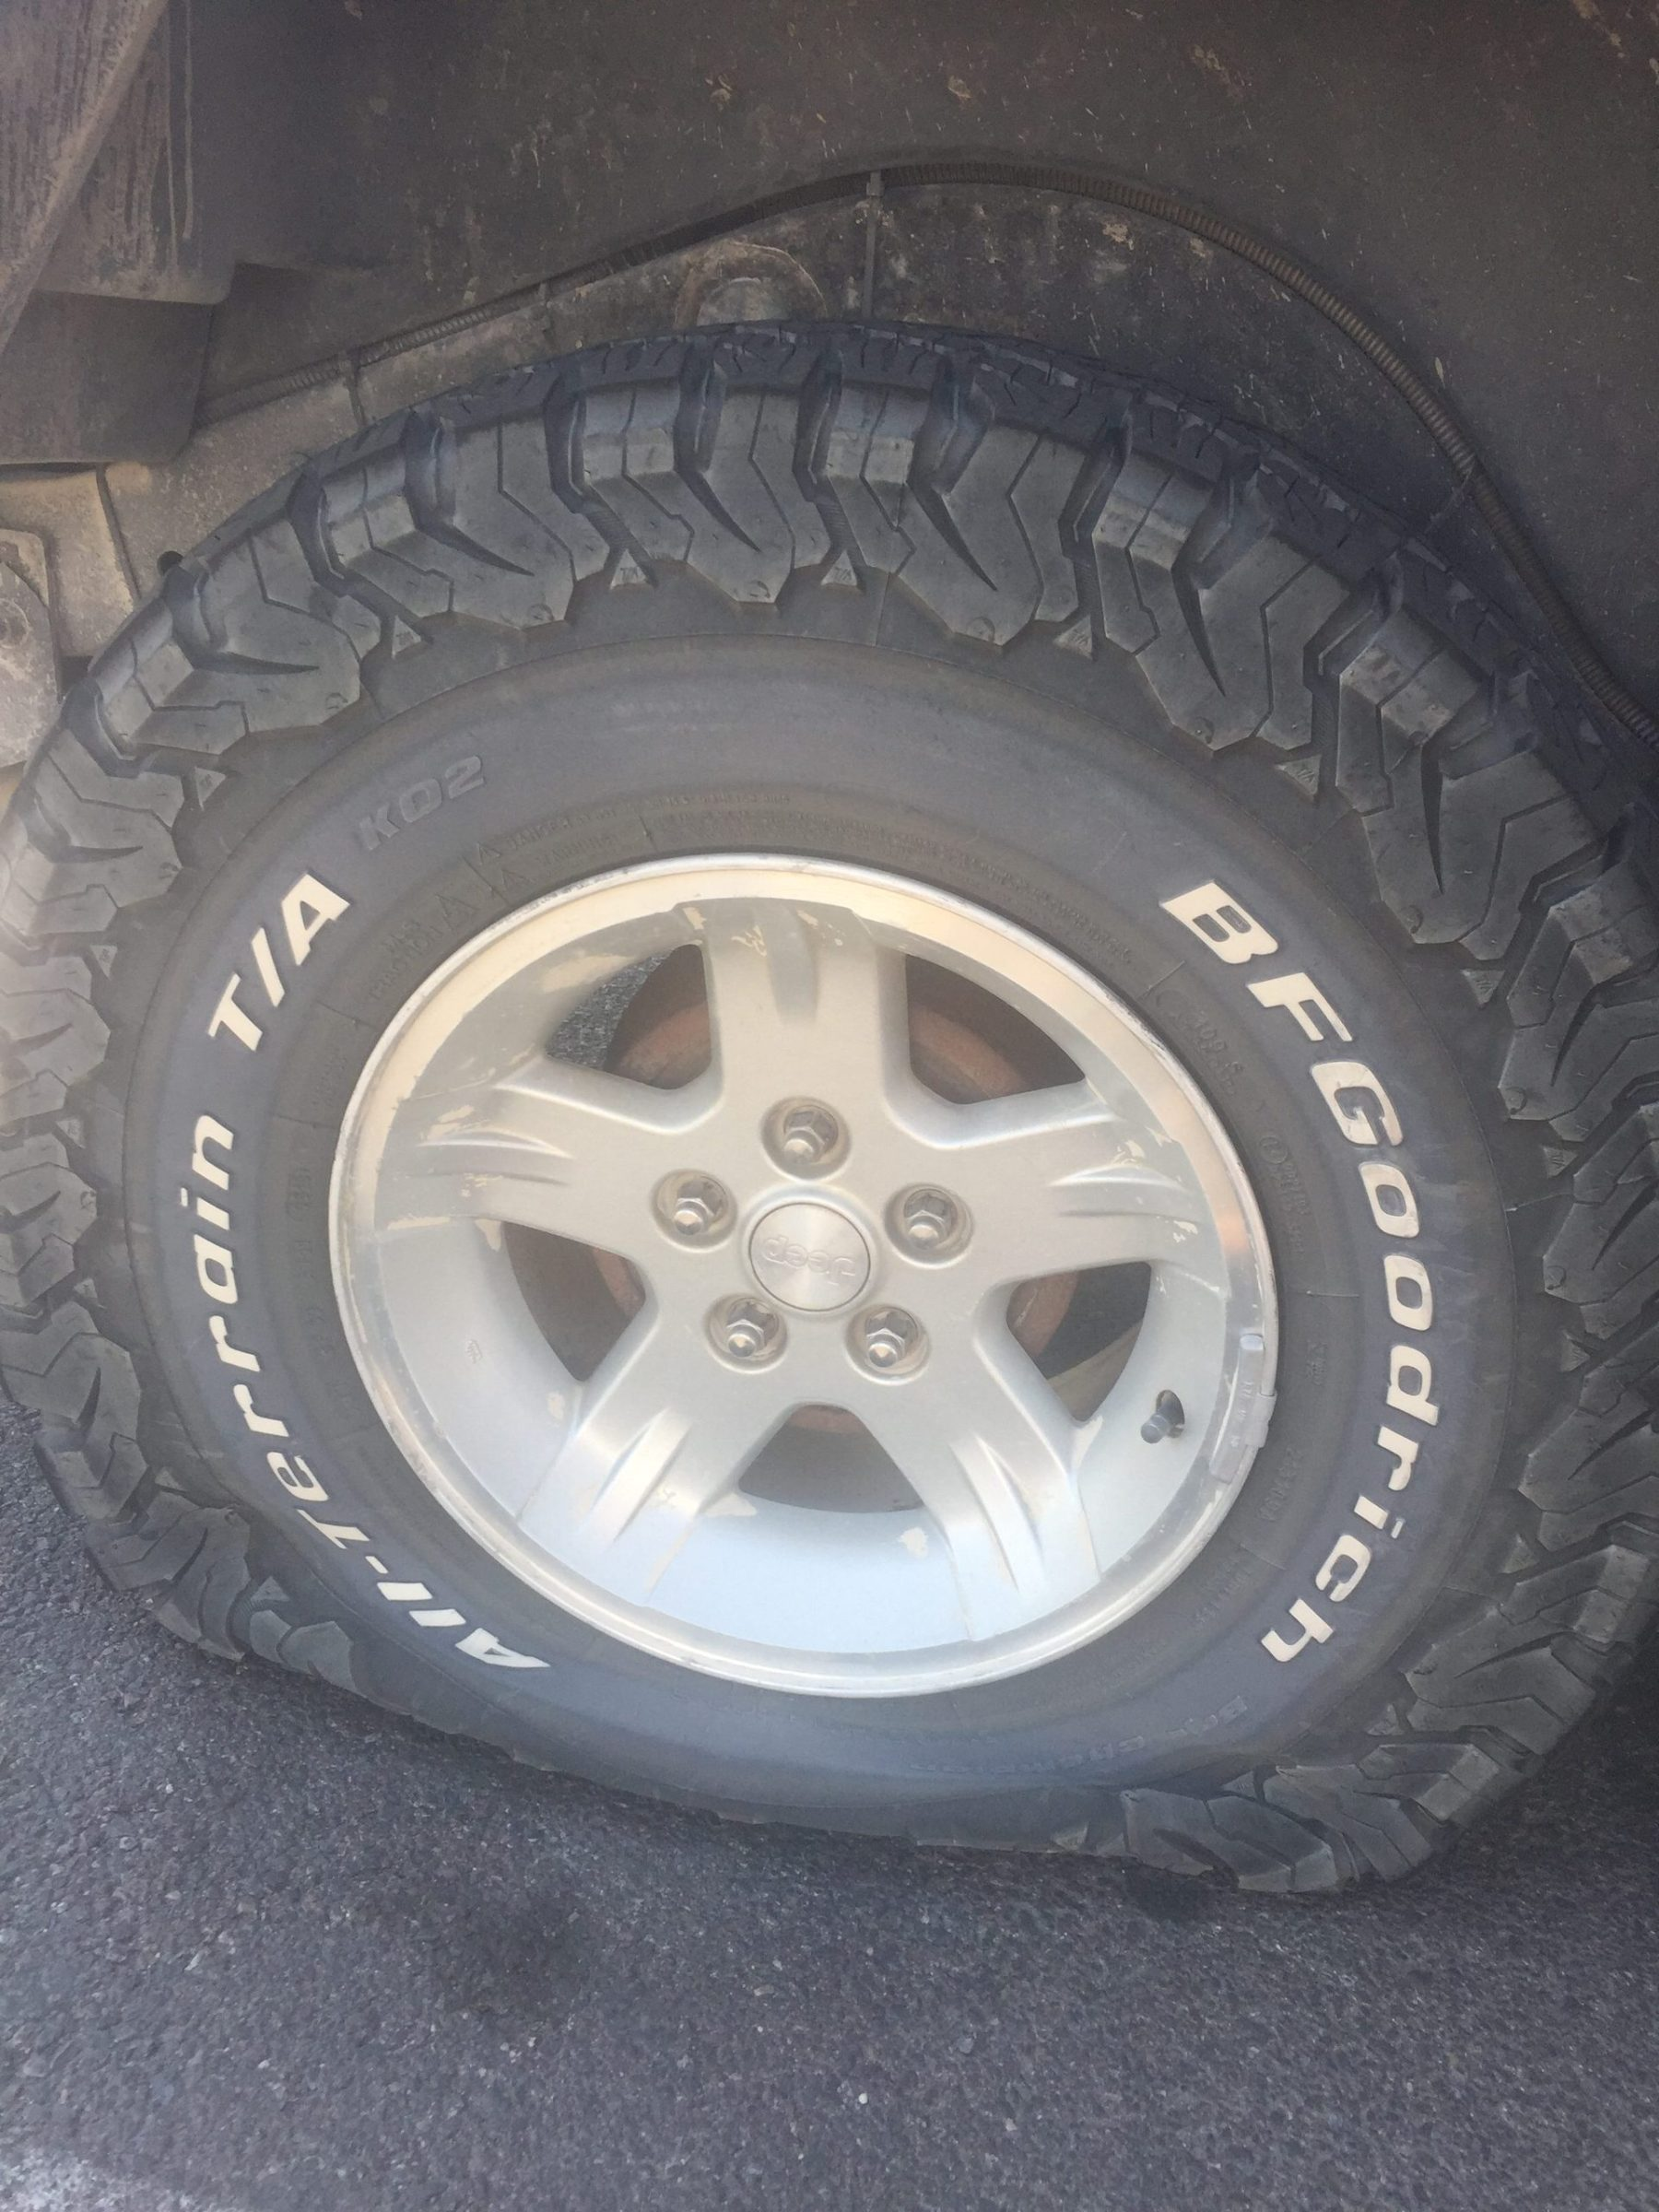 Flat tire! Slow leak overnight, luckily it happened in Wendover, Utah